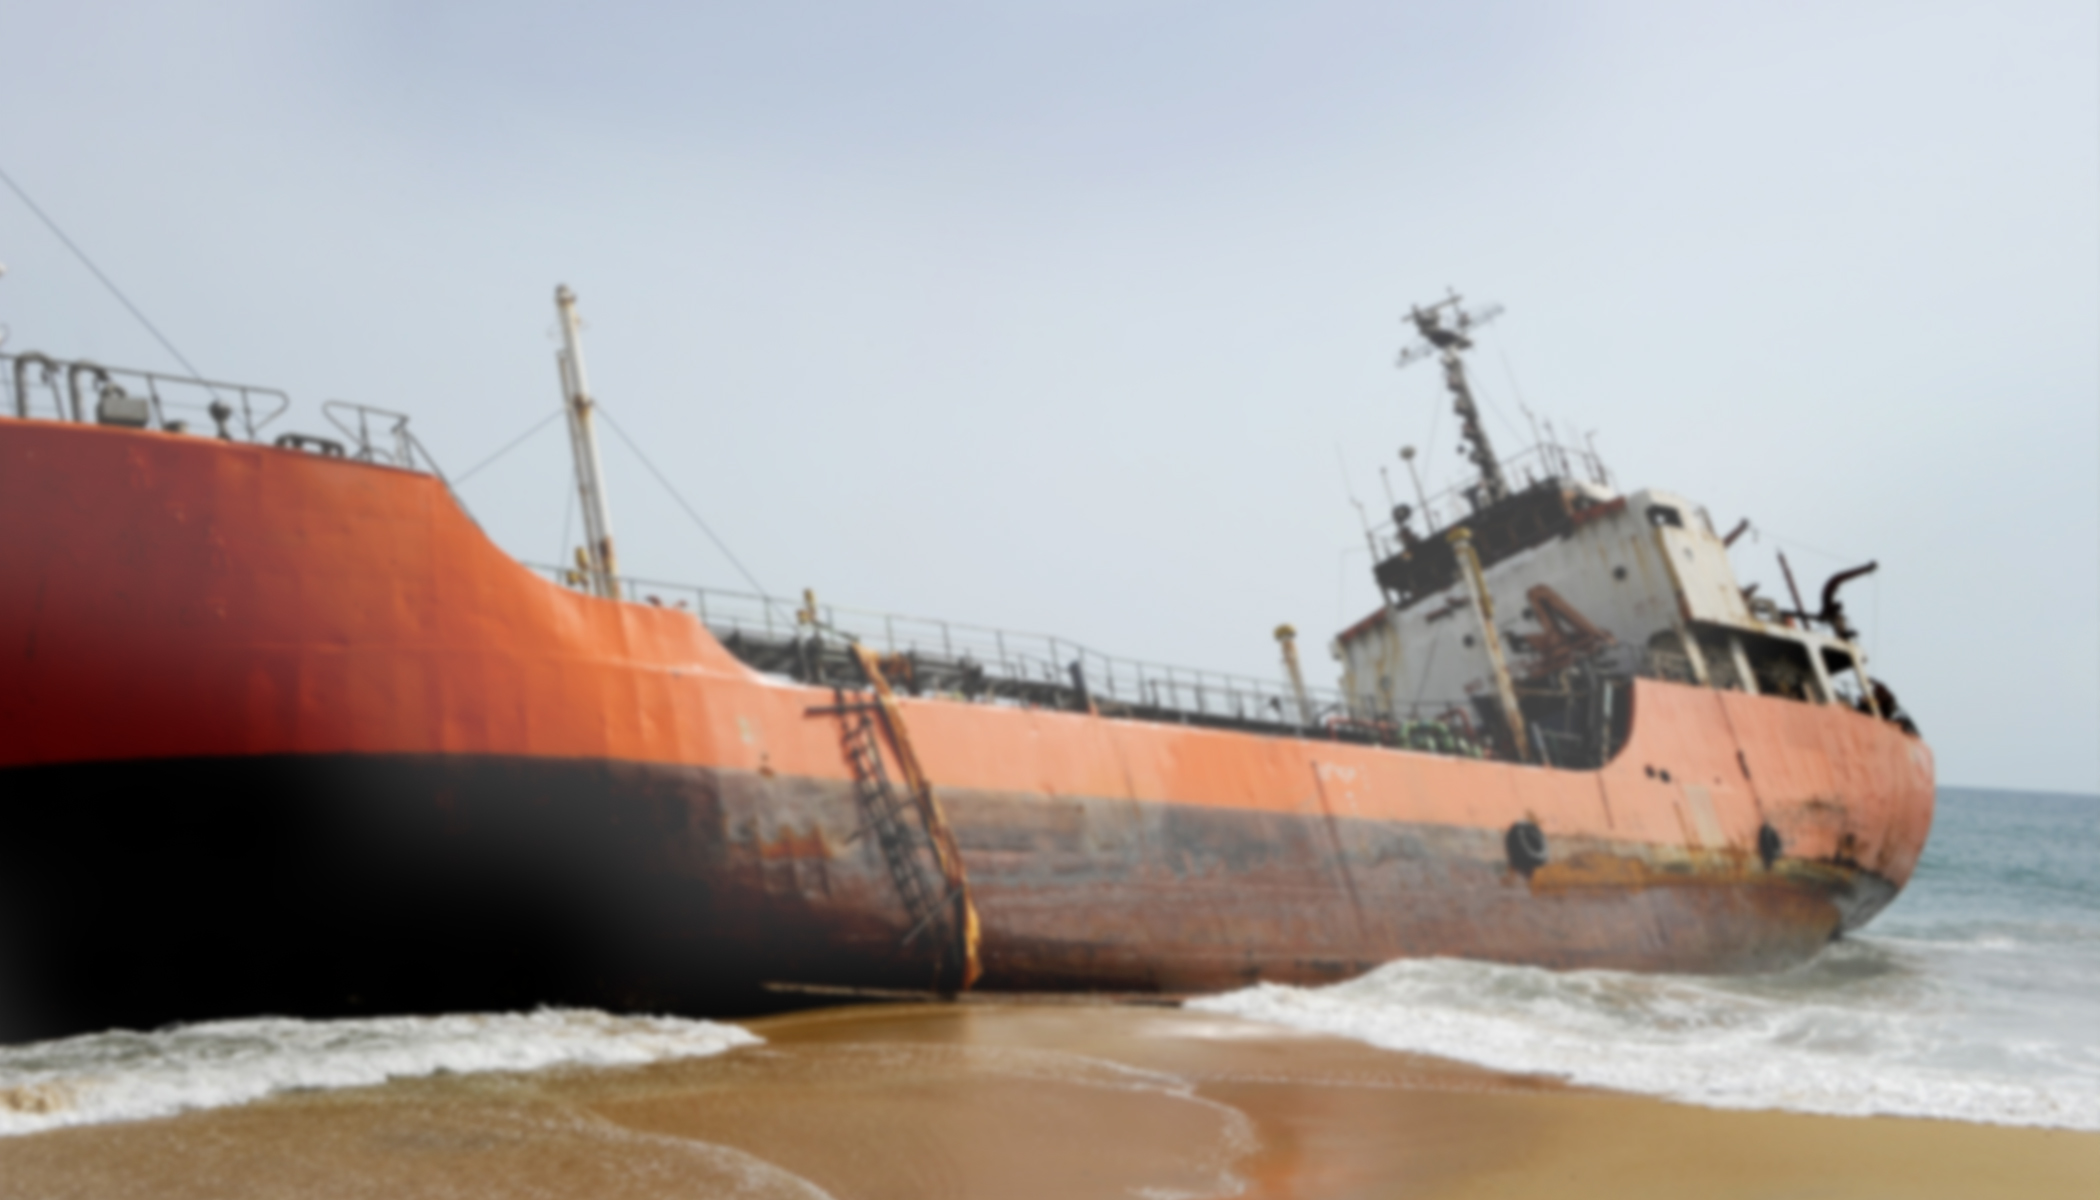 'Ghost Ship' Reappears After Missing for 9 Years With No Cargo and Crew On board